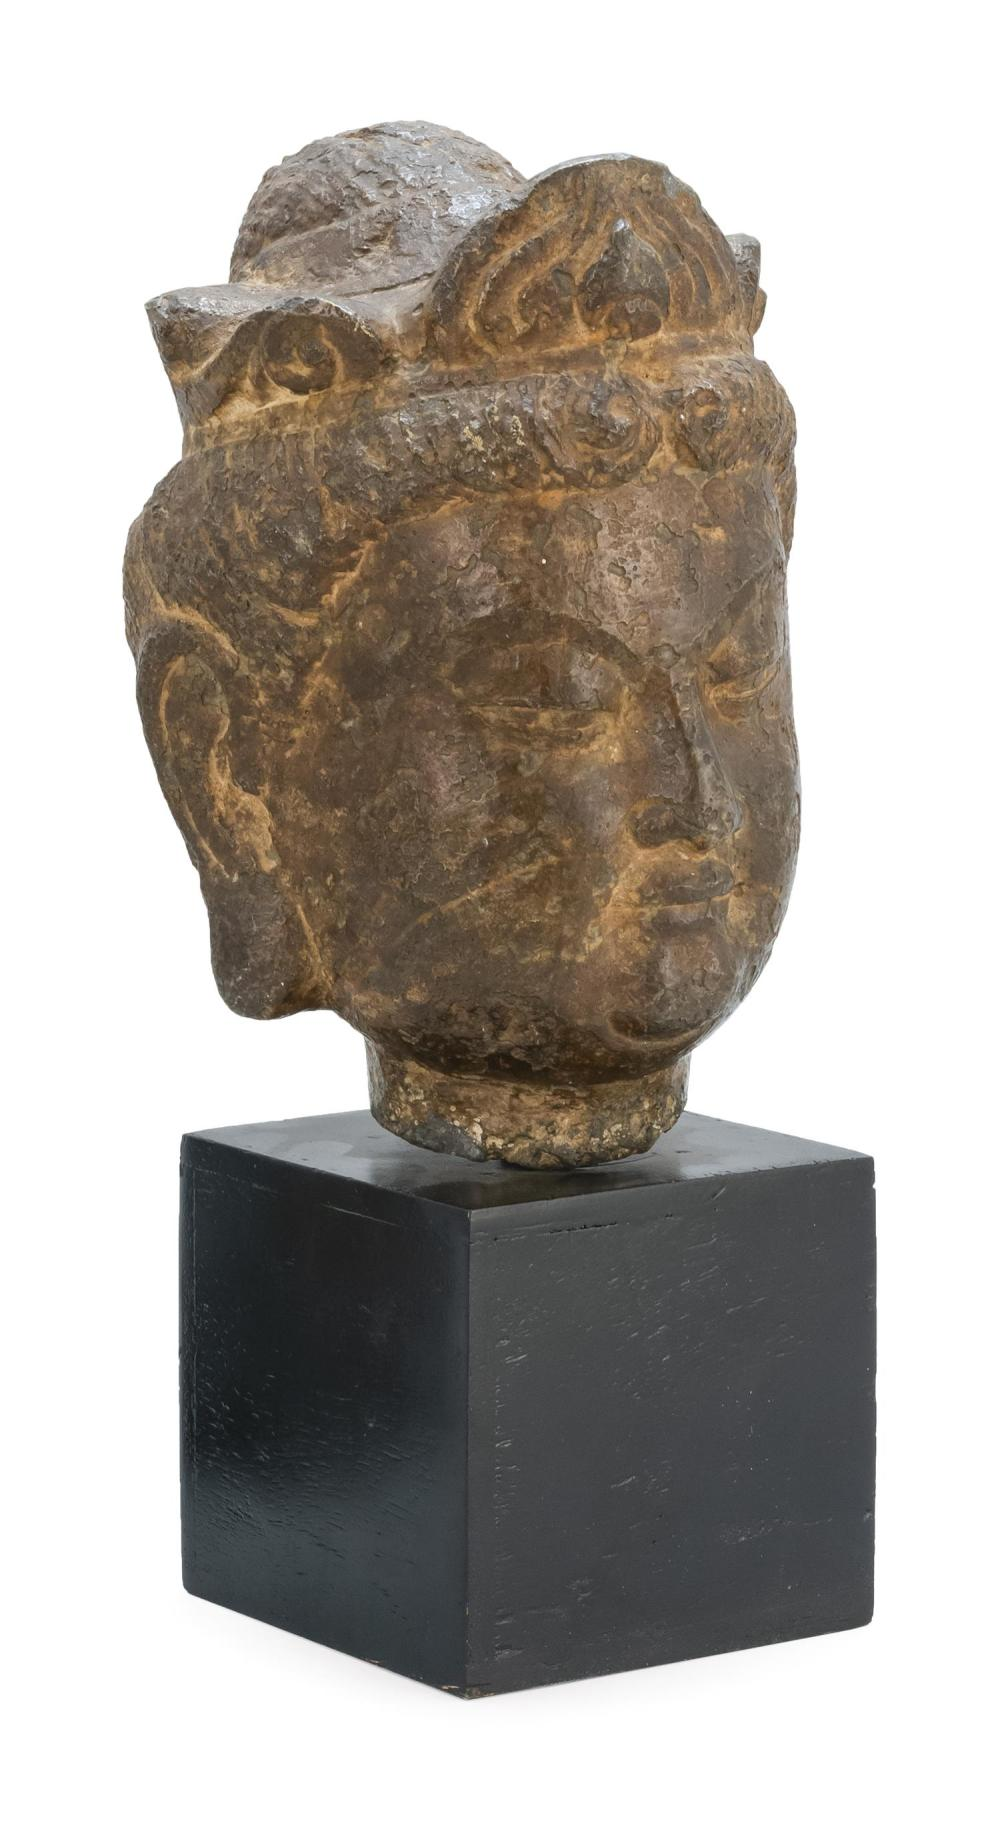 "STONE HEAD OF BUDDHA Wearing a pearl-decorated crown. Height 10"". Ex Collection: Sackler Museum."